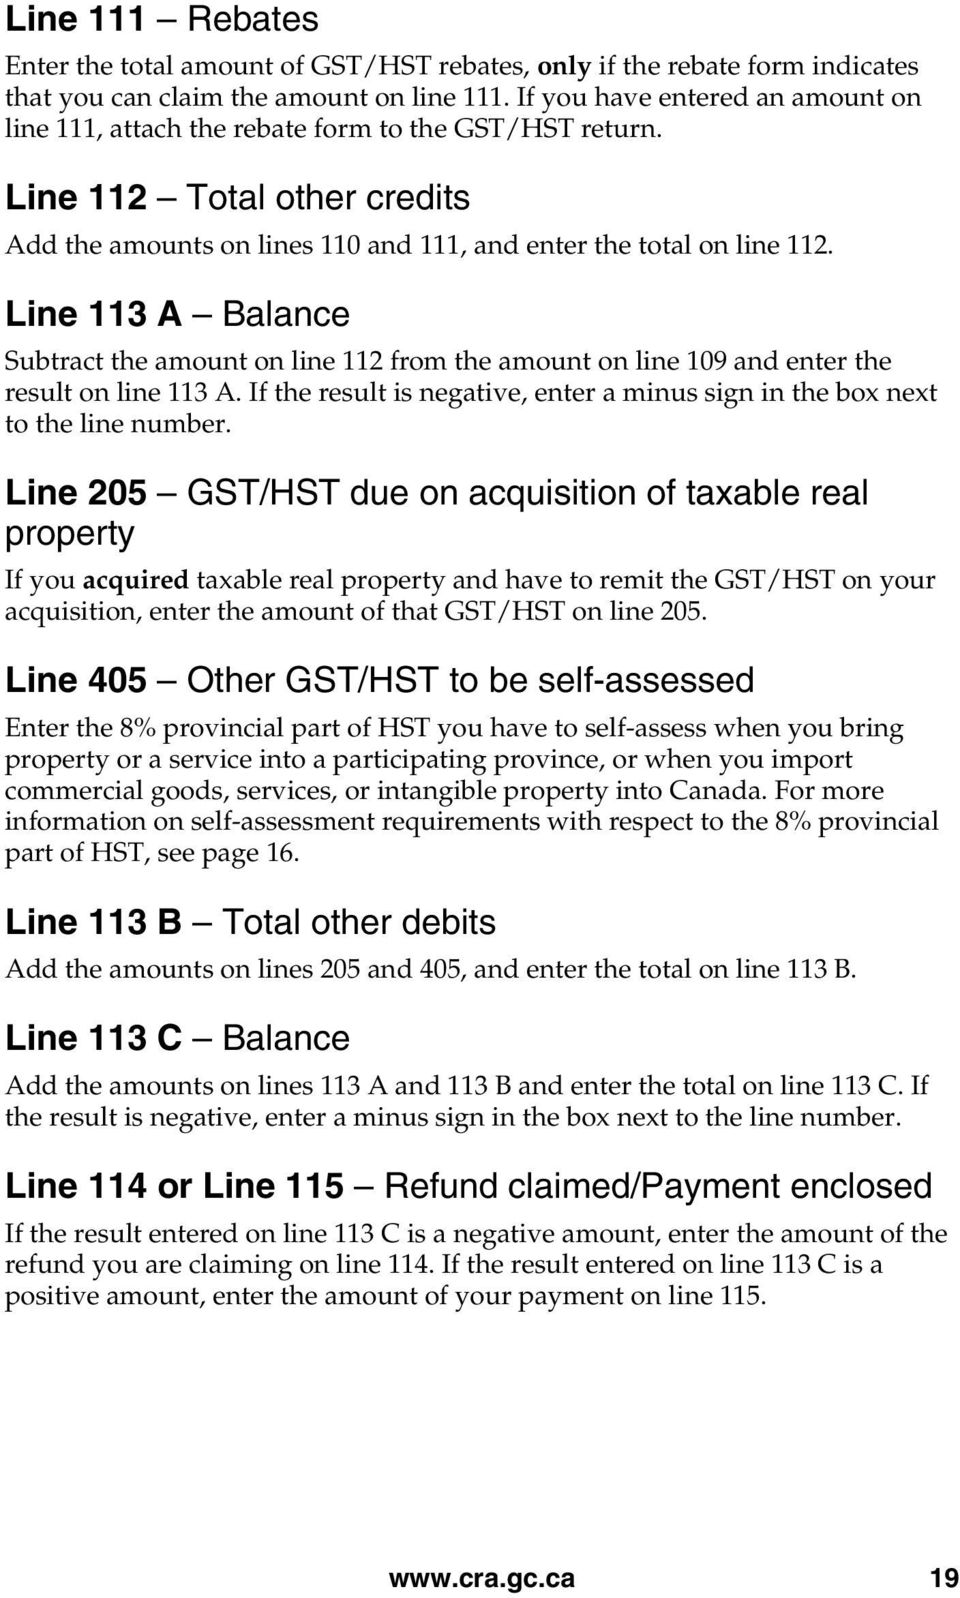 Line 113 A Balance Subtract the amount on line 112 from the amount on line 109 and enter the result on line 113 A. If the result is negative, enter a minus sign in the box next to the line number.